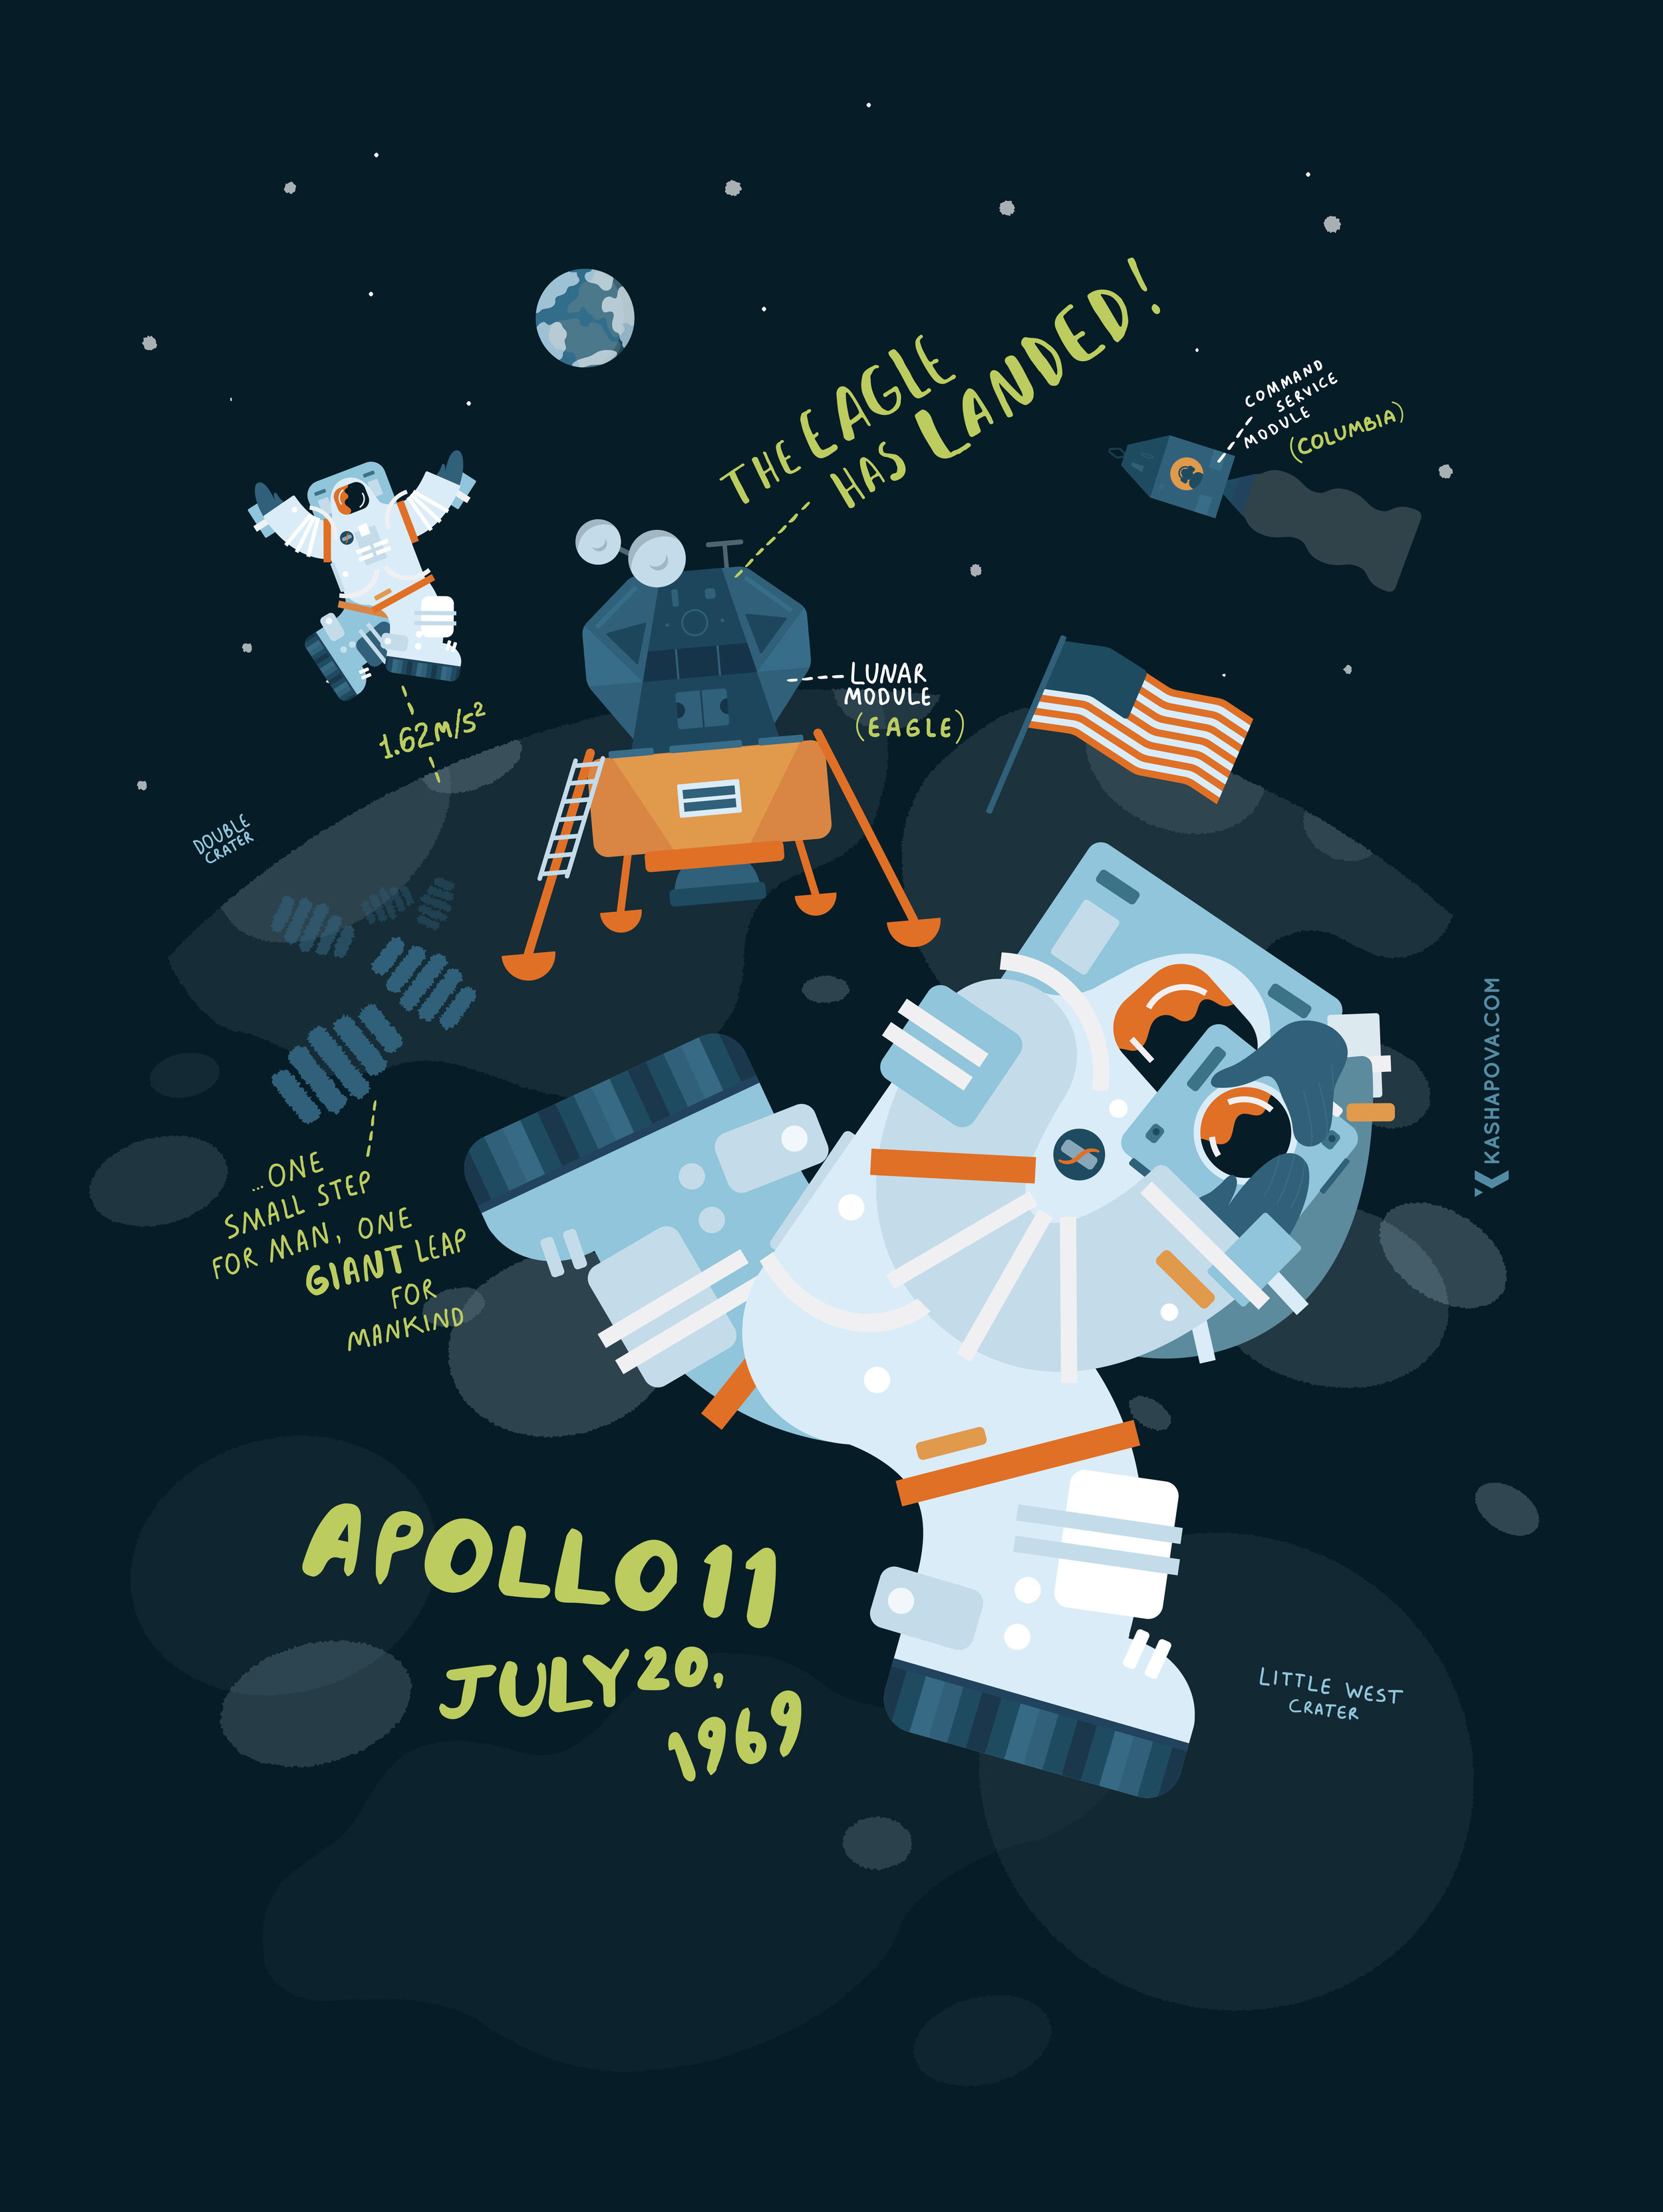 "Apollo 11 Anniversary - Here is an illustration I came up with to celebrate the upcoming 50th anniversary of the Apollo 11 crew landing on the Moon on July 20th, 1969.I wanted to portray a few key elements from those memorable hours that our astronauts spent on the lunar surface: the Lunar Module's landing site (the famous ""The Eagle has landed!"" moment), the first steps, playing around with the lunar gravity, exploring the area and taking photos, the planted flag, ""Columbia"" orbiting the Moon, and last (but definitely not least) the view of the Earth (at that point of time the astronauts could see the bit with Africa and Eurasia).If you'd like your own copy, I've added some products to my Society6 and Design by Humans stores. Here are few of my faves:Biker tank & Tote bag from Society6Sweatshirts and Hoodies from Design by HumansPoster & Notebooks from Society6"